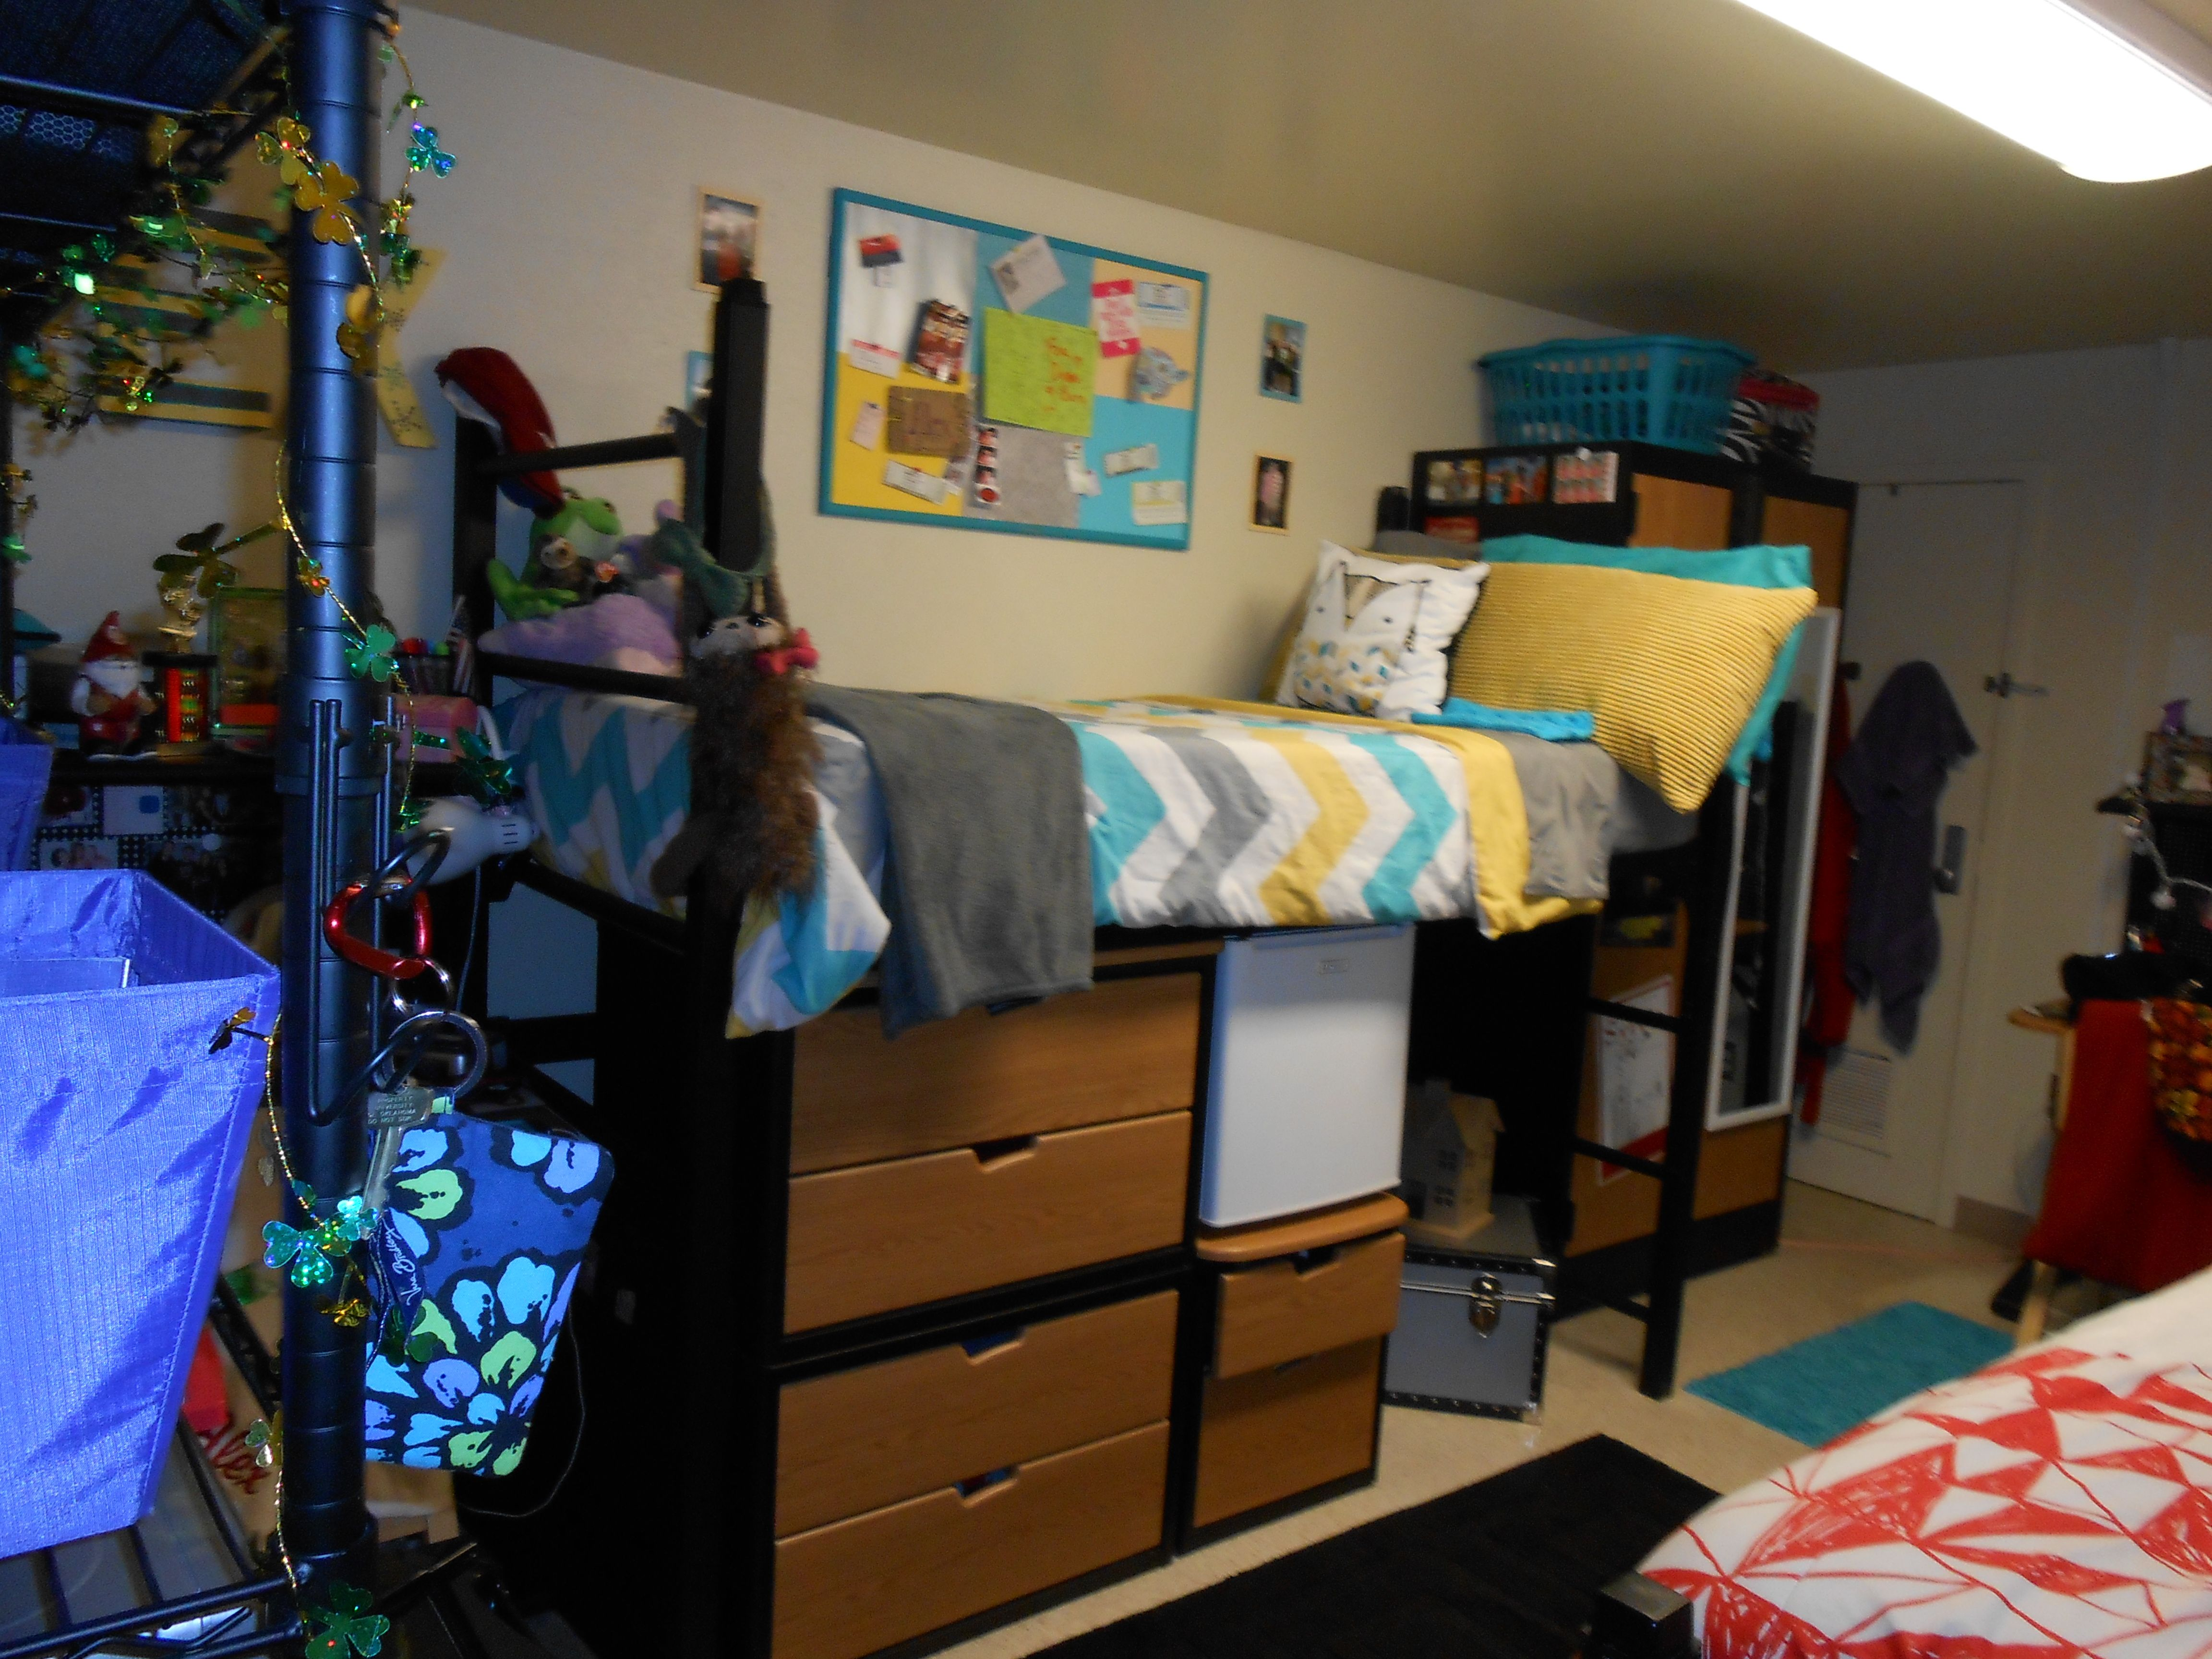 Dorm room furniture layout - Dorm Room At The University Of Oklahoma